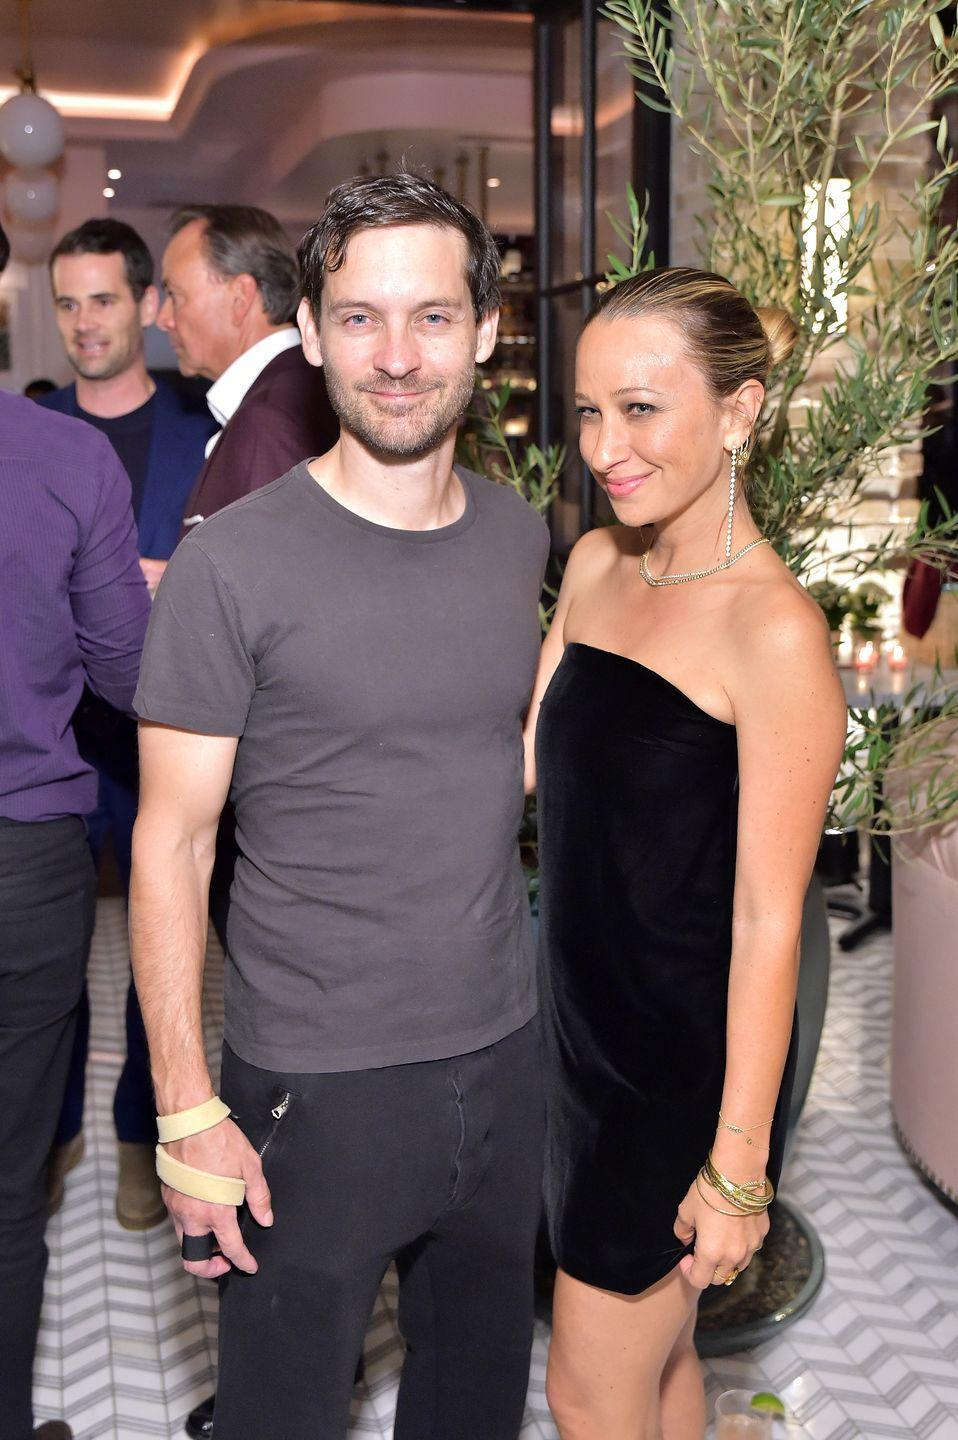 <p>The <em>Spider-Man </em>actor married jewelry designer Jennifer Meyer in 2007. The couple, who share two children together, divorced in 2017.</p>